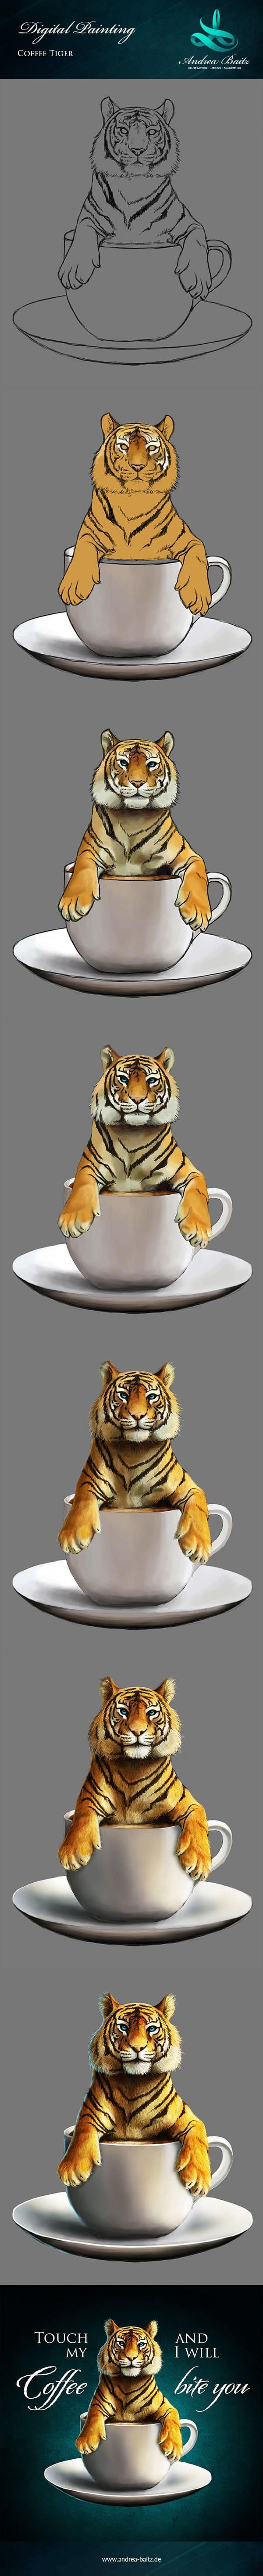 T-Shirt-Design Touch my Coffee and i will bite you, T-Shirt Designer Andrea Baitz, Illustration, Digital Painting, Digitale Illustration, Grafikdesign, Ines Kampf Design, T-Shirt Designer Deutschland, Digital Painting Tutorial